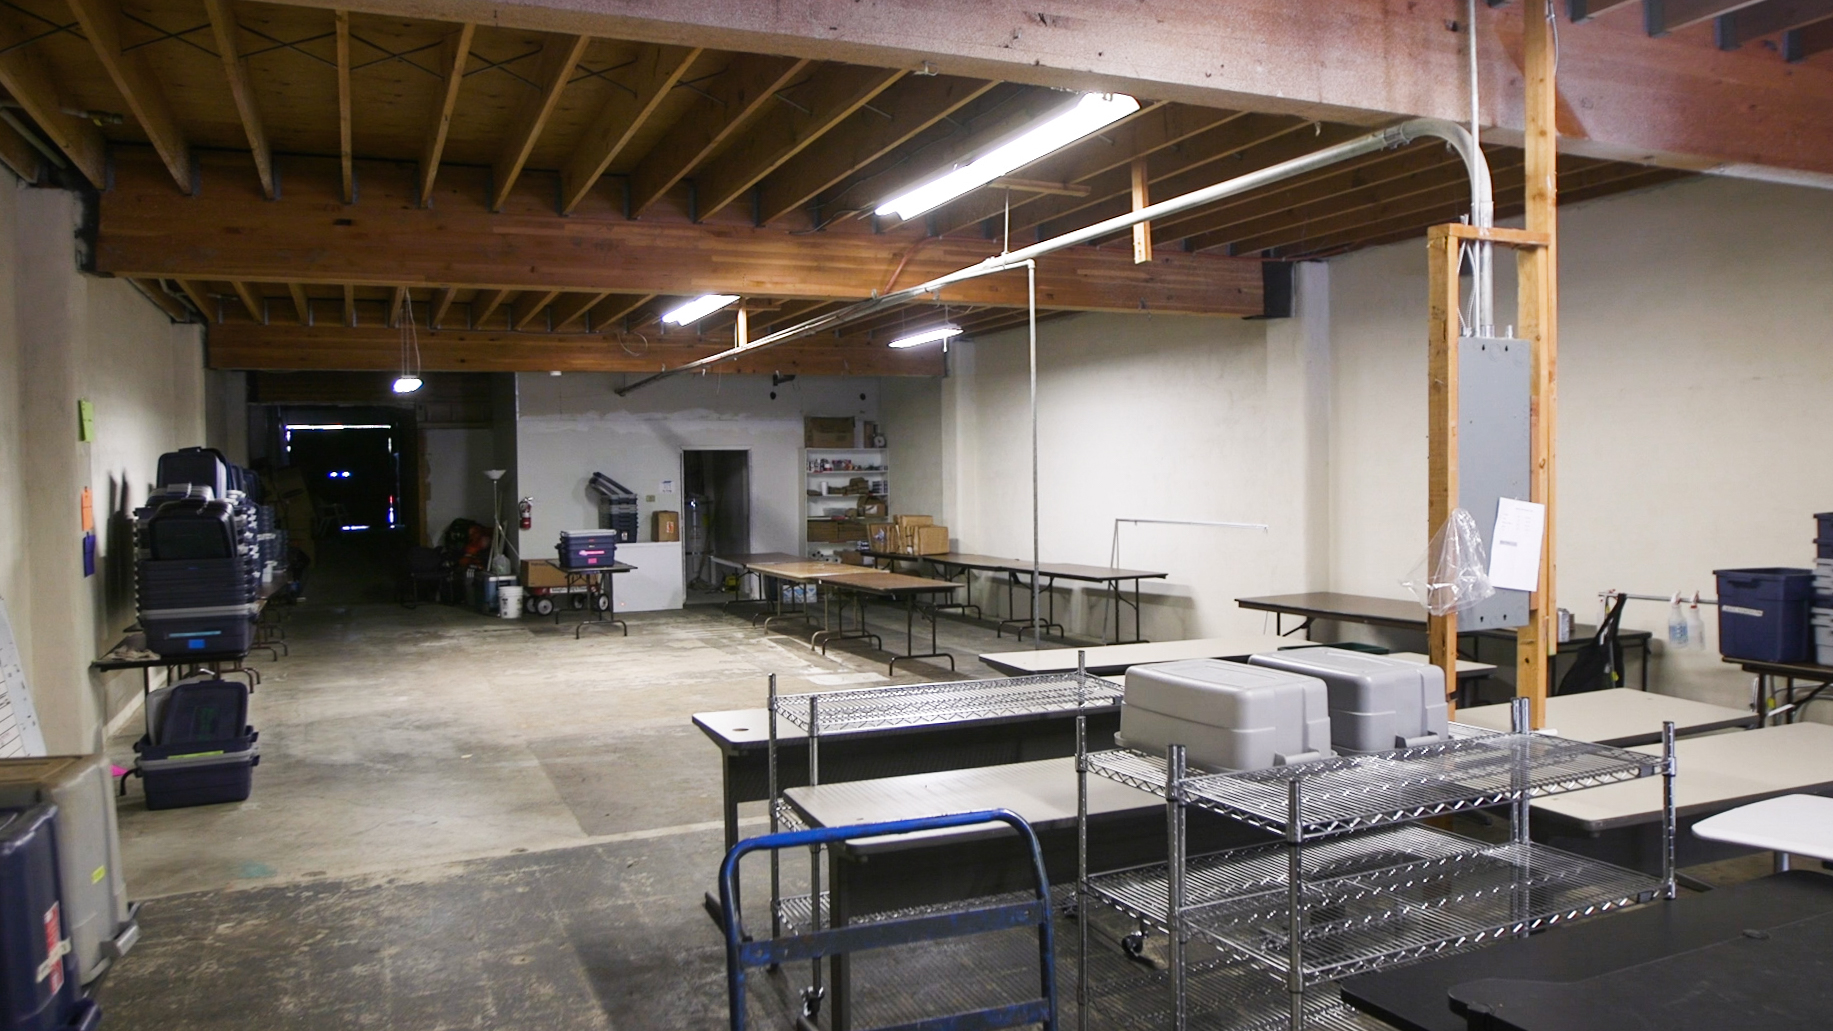 Unfinished space that will be turned into Early Childhood Education classrooms.